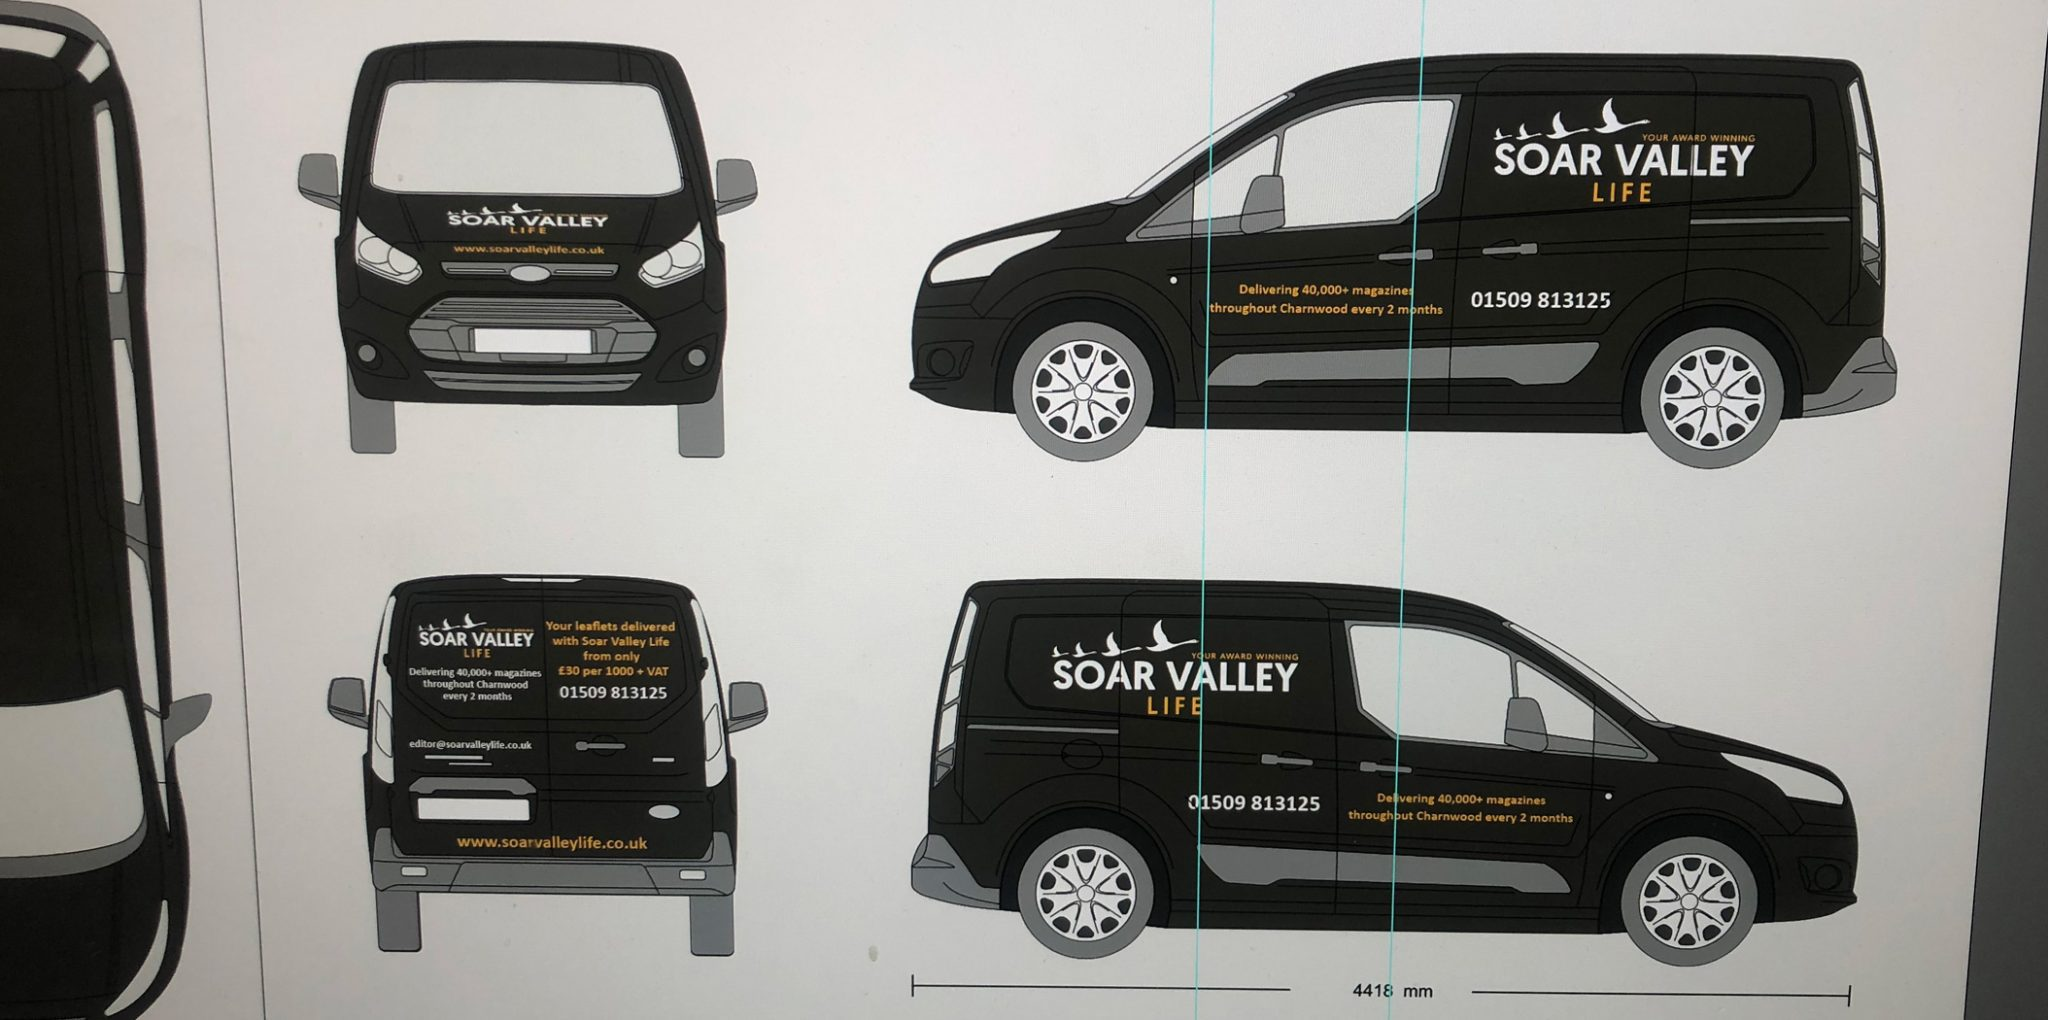 car with print sticker with business name soar valley